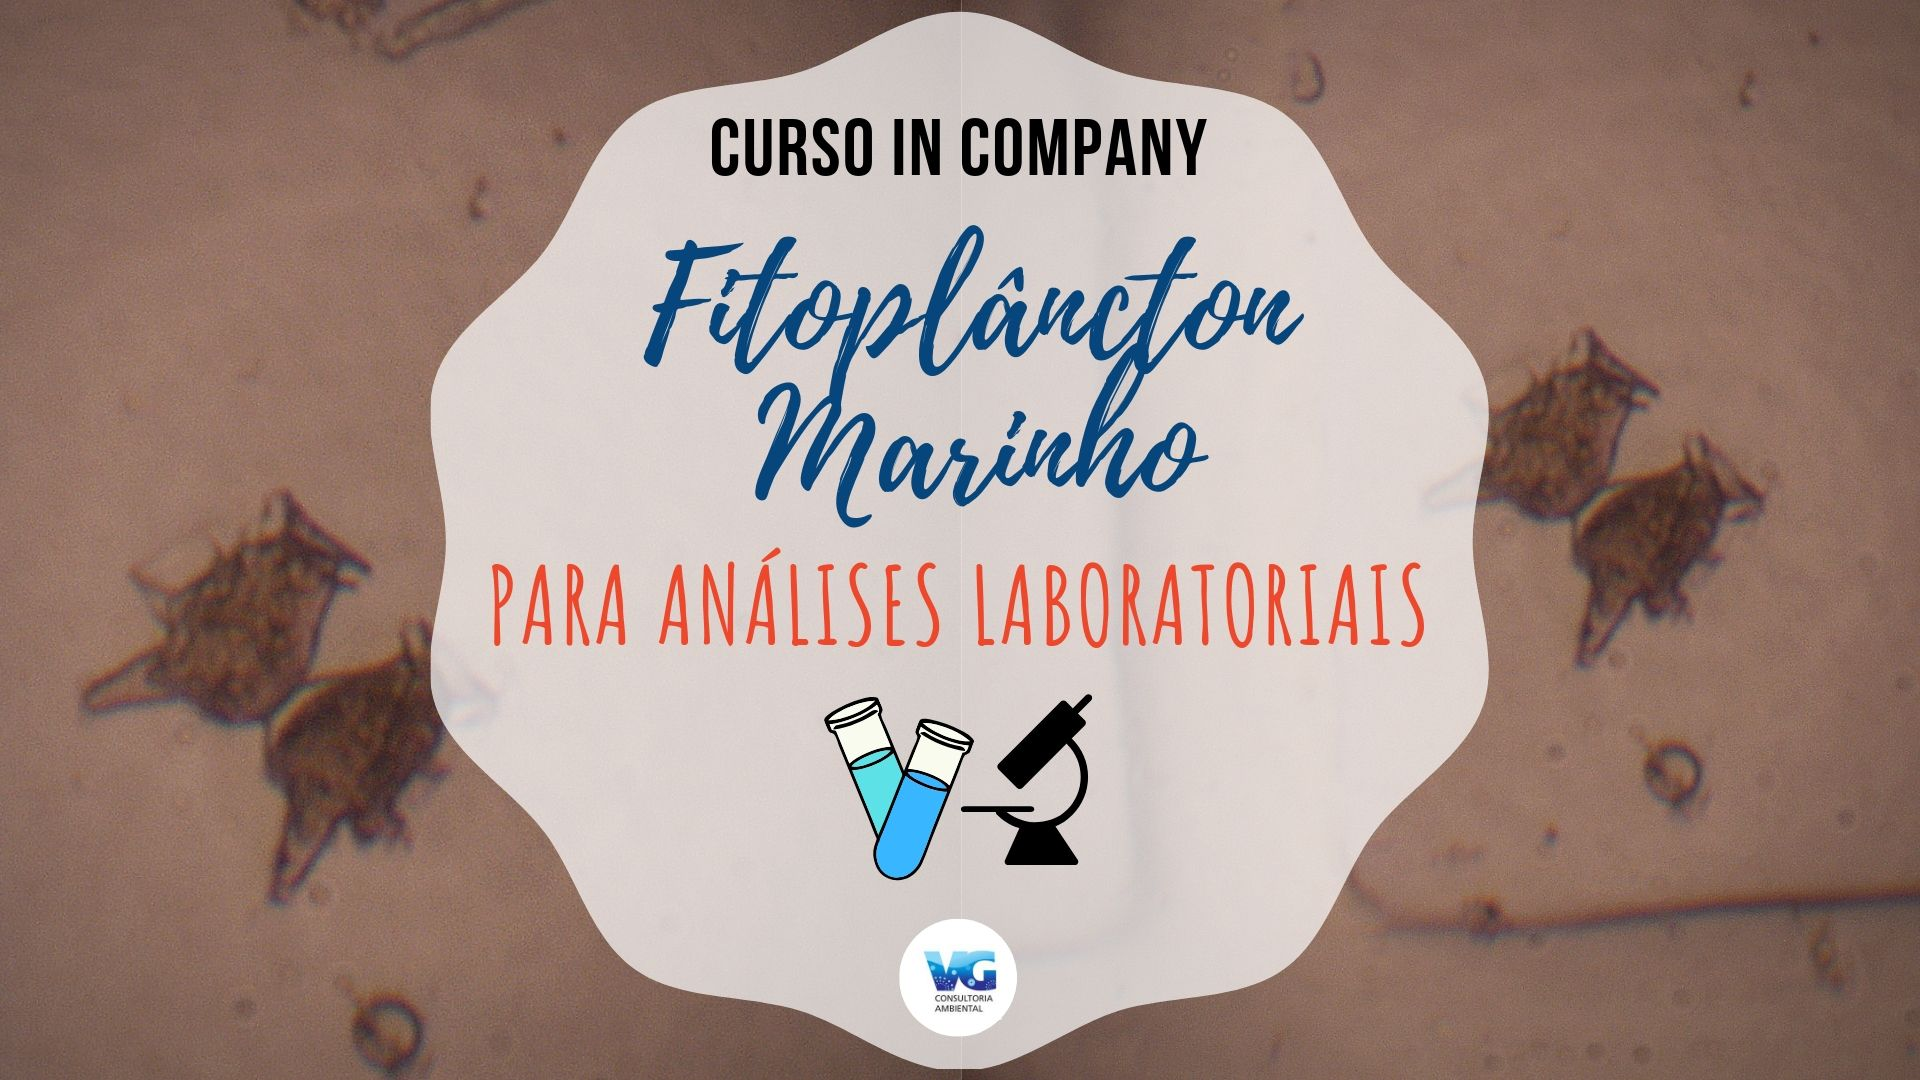 analises-laboratoriais-fito-marinho-incompany